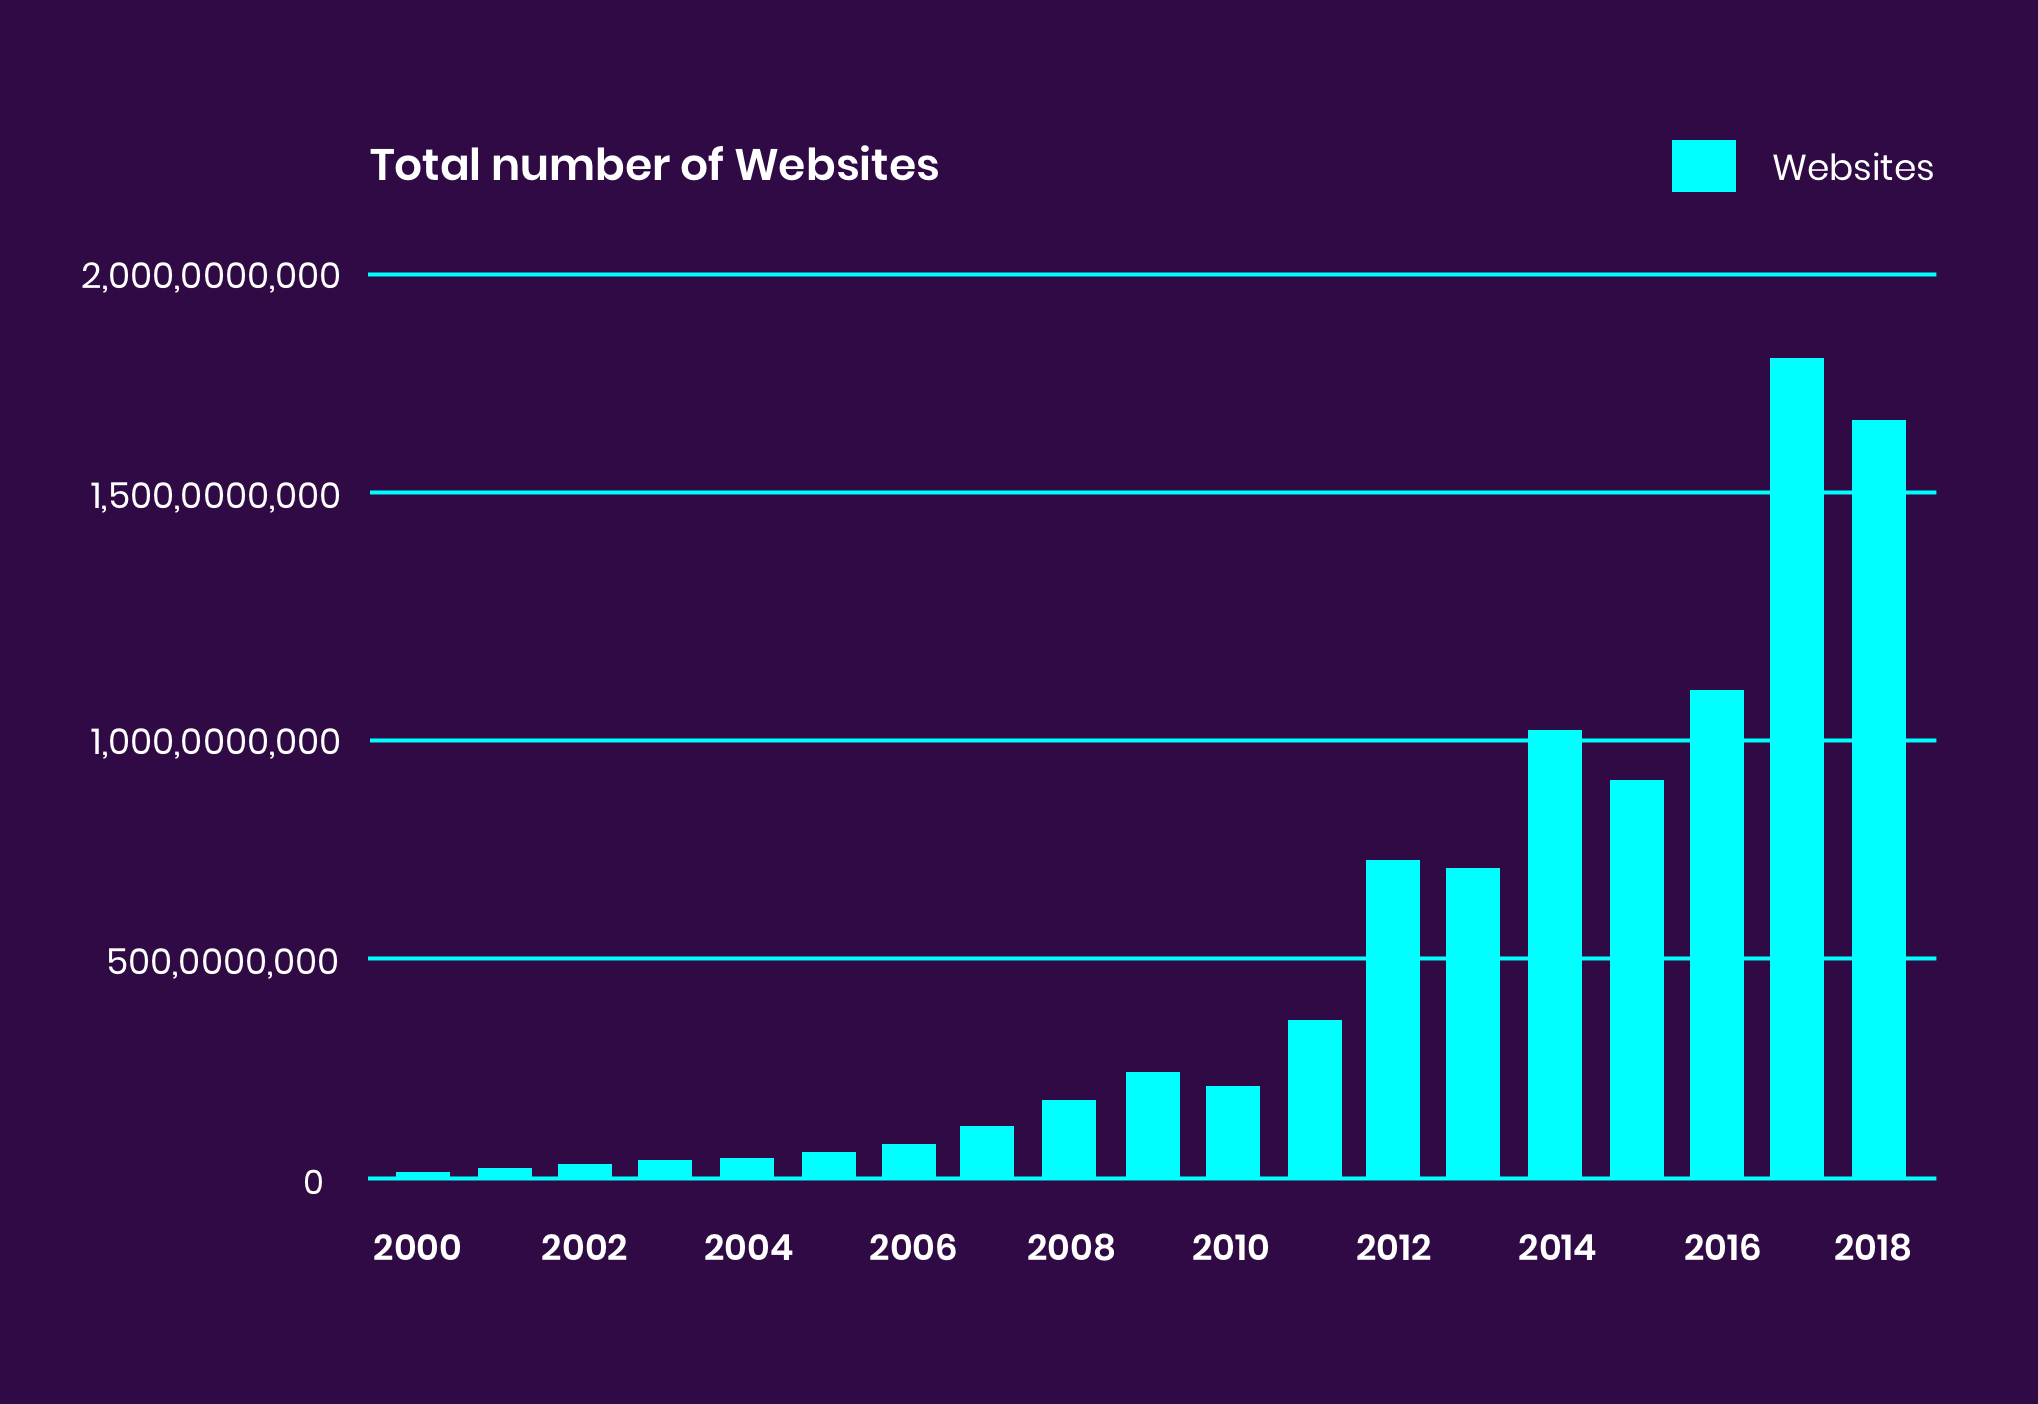 Total number of websites - bar graph